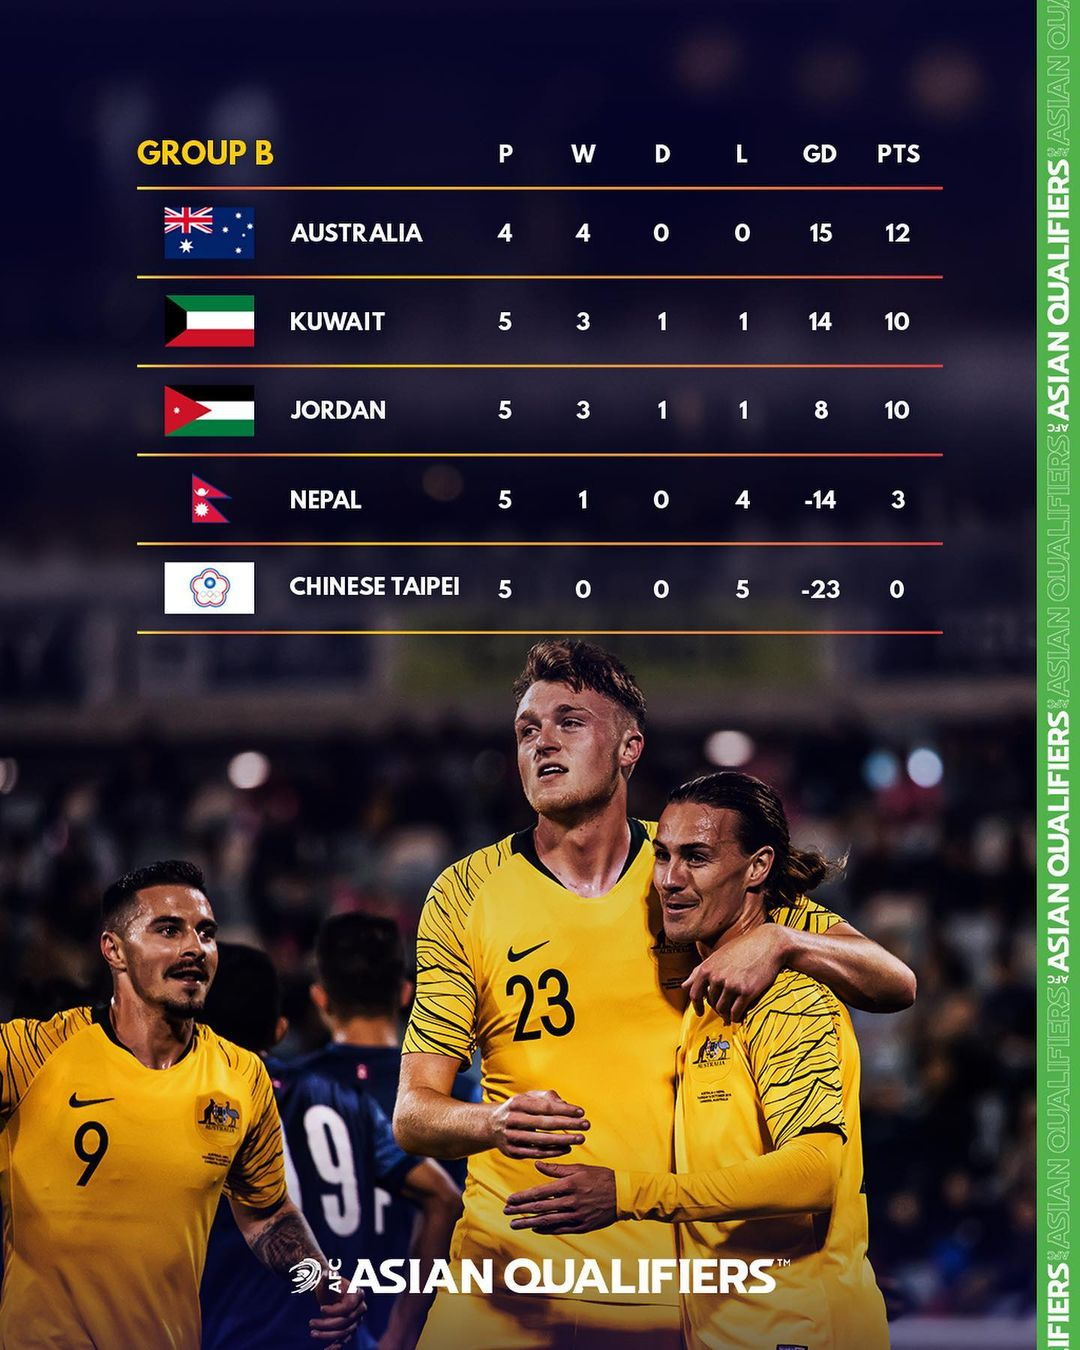 Asian Qualifiers Group Standings